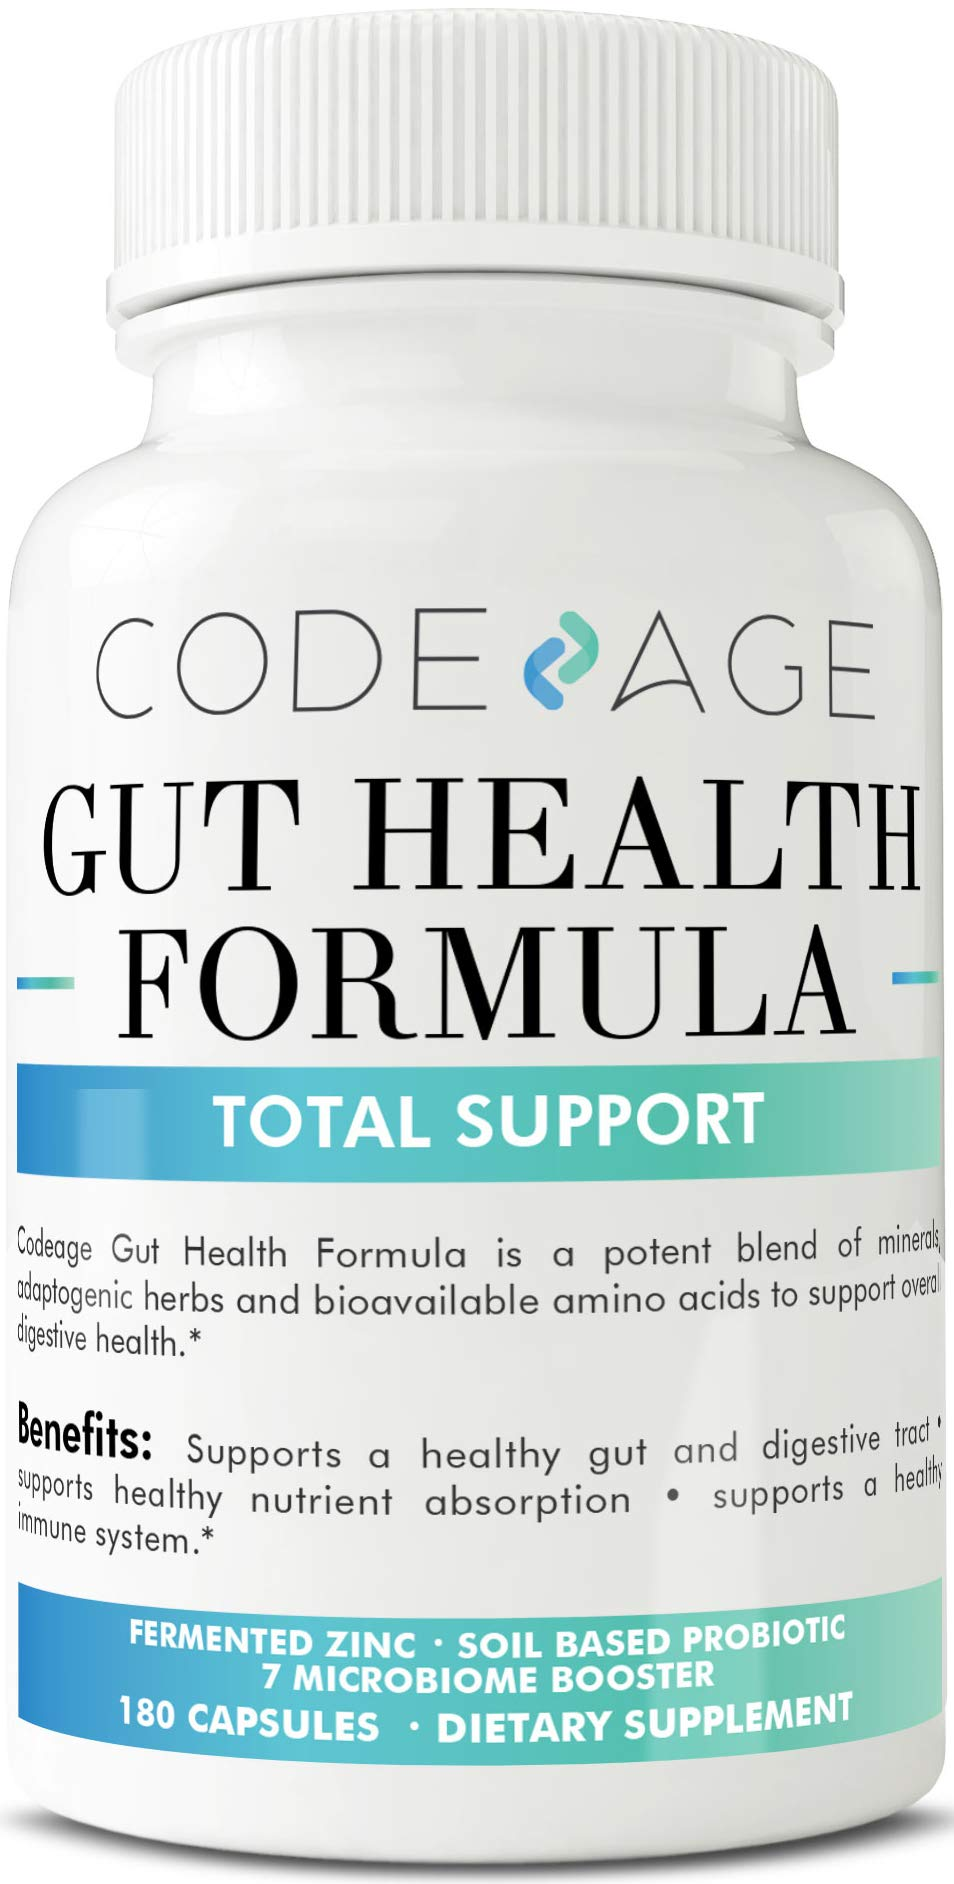 Codeage Leaky Gut Formula Supplements, Integrity Blend of L Glutamine, Licorice Root DGL, SBO Probiotics and Prebiotics 10 Billion CFUs Per Serving, 180 Capsules by Codeage